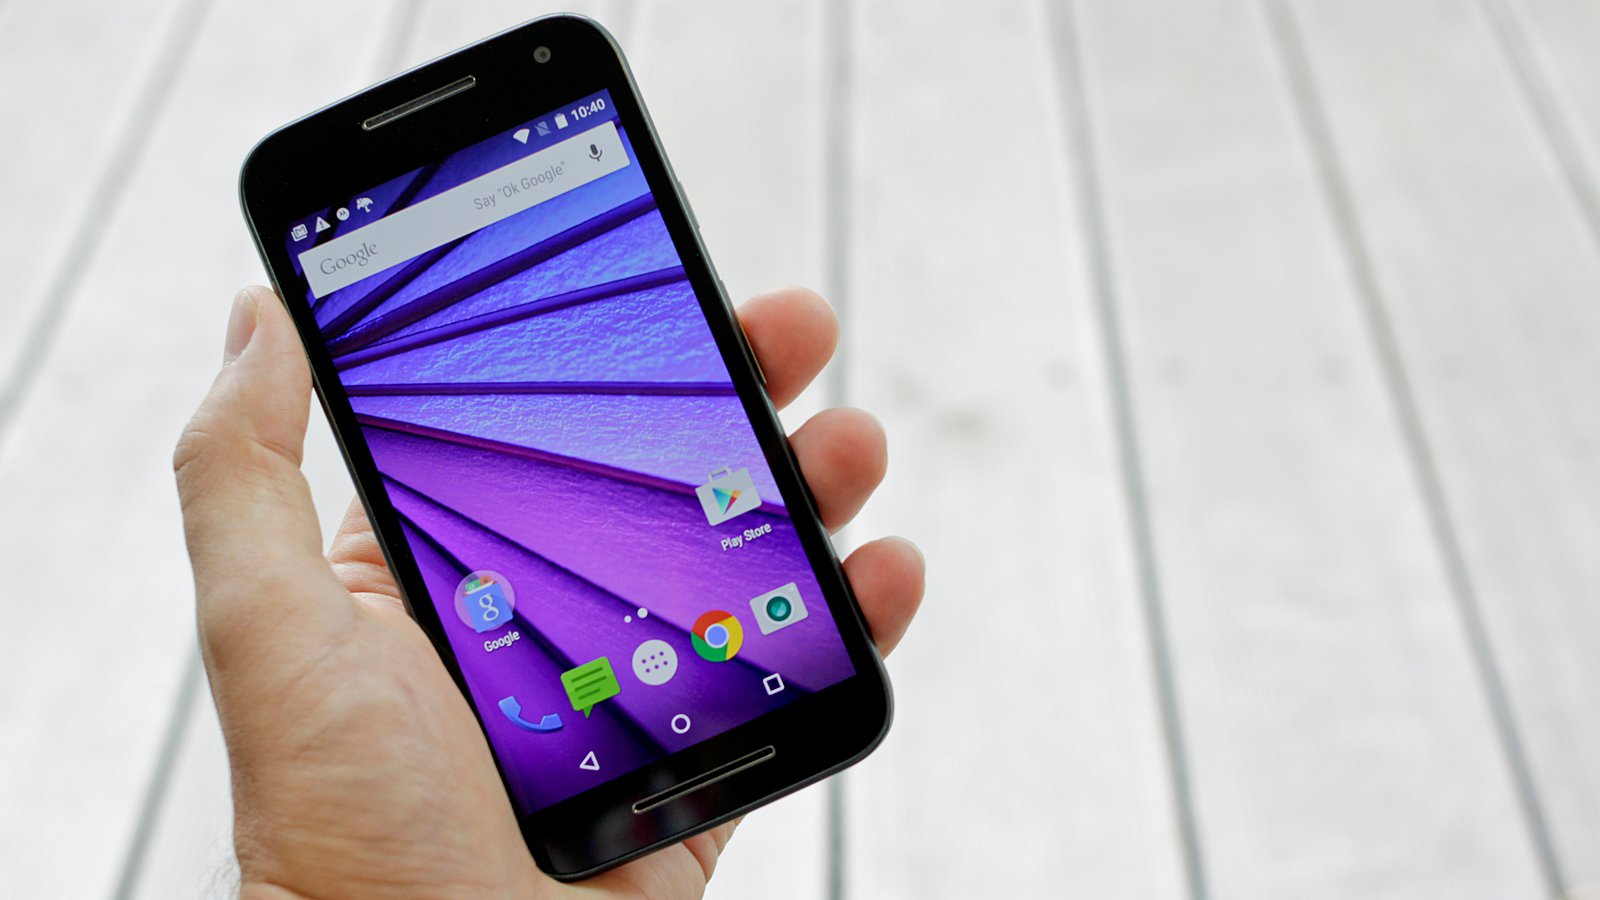 Improve moto g 3rd gen battery life